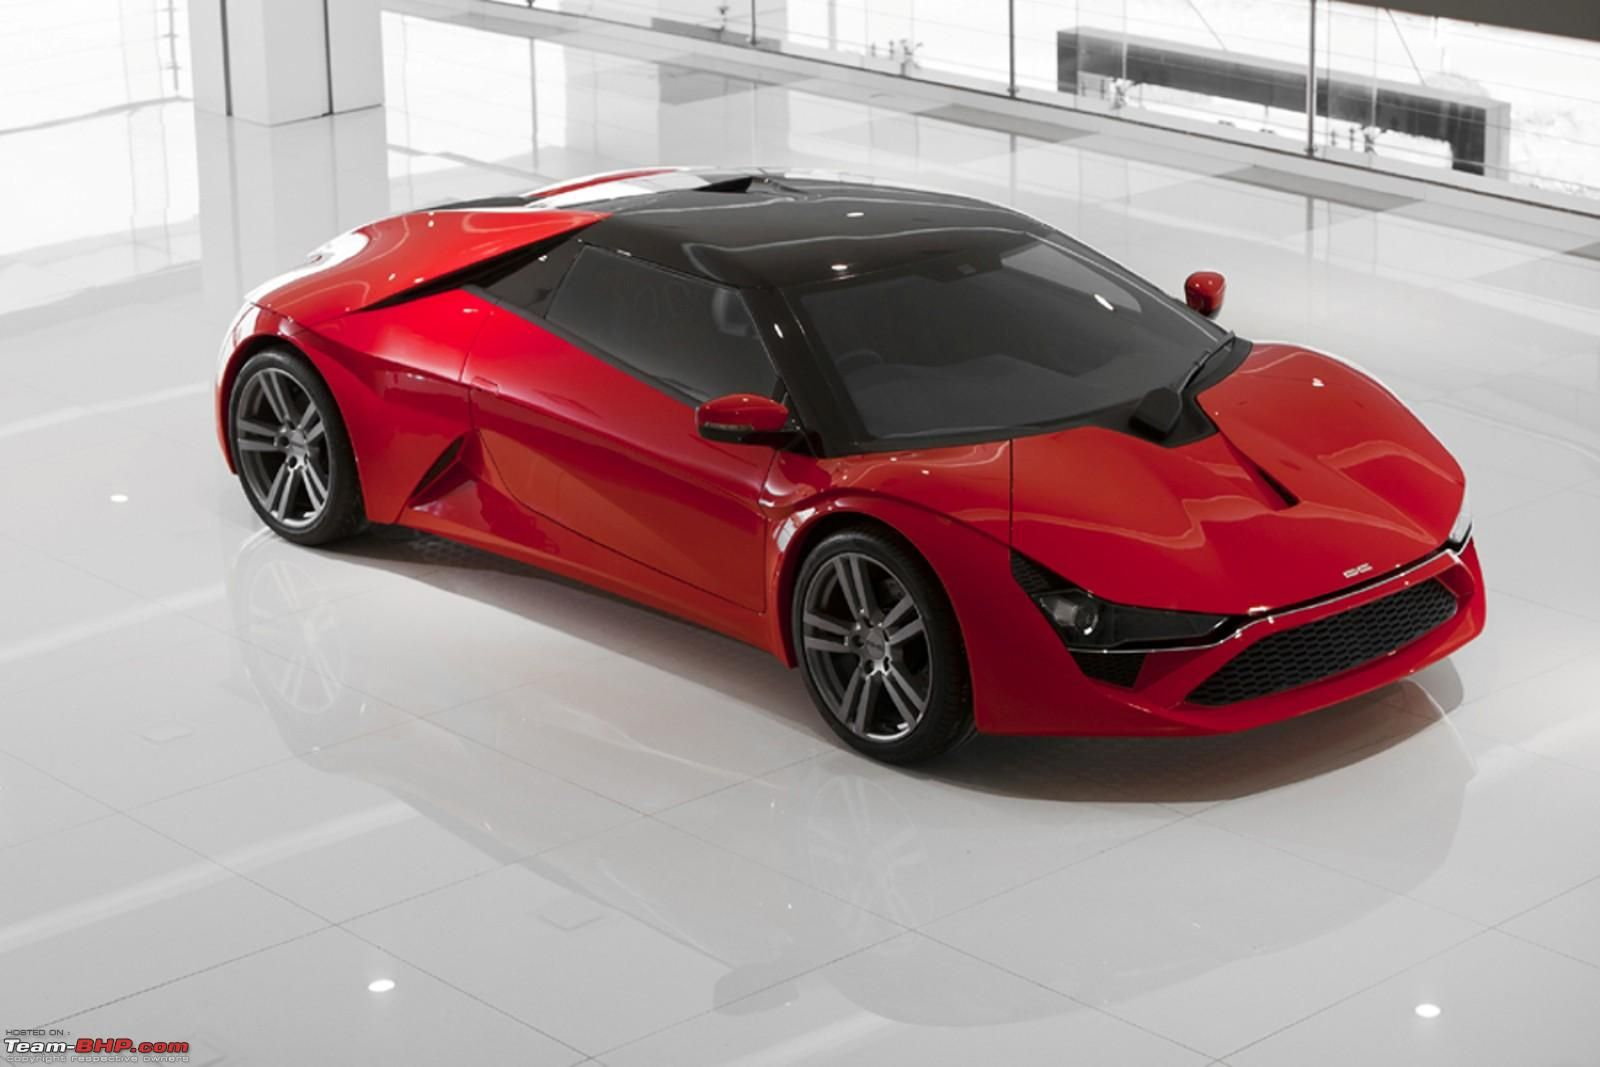 Image For Cheapest Sports Cars Cars Cars Cars Pinterest - Cheap good looking sports cars